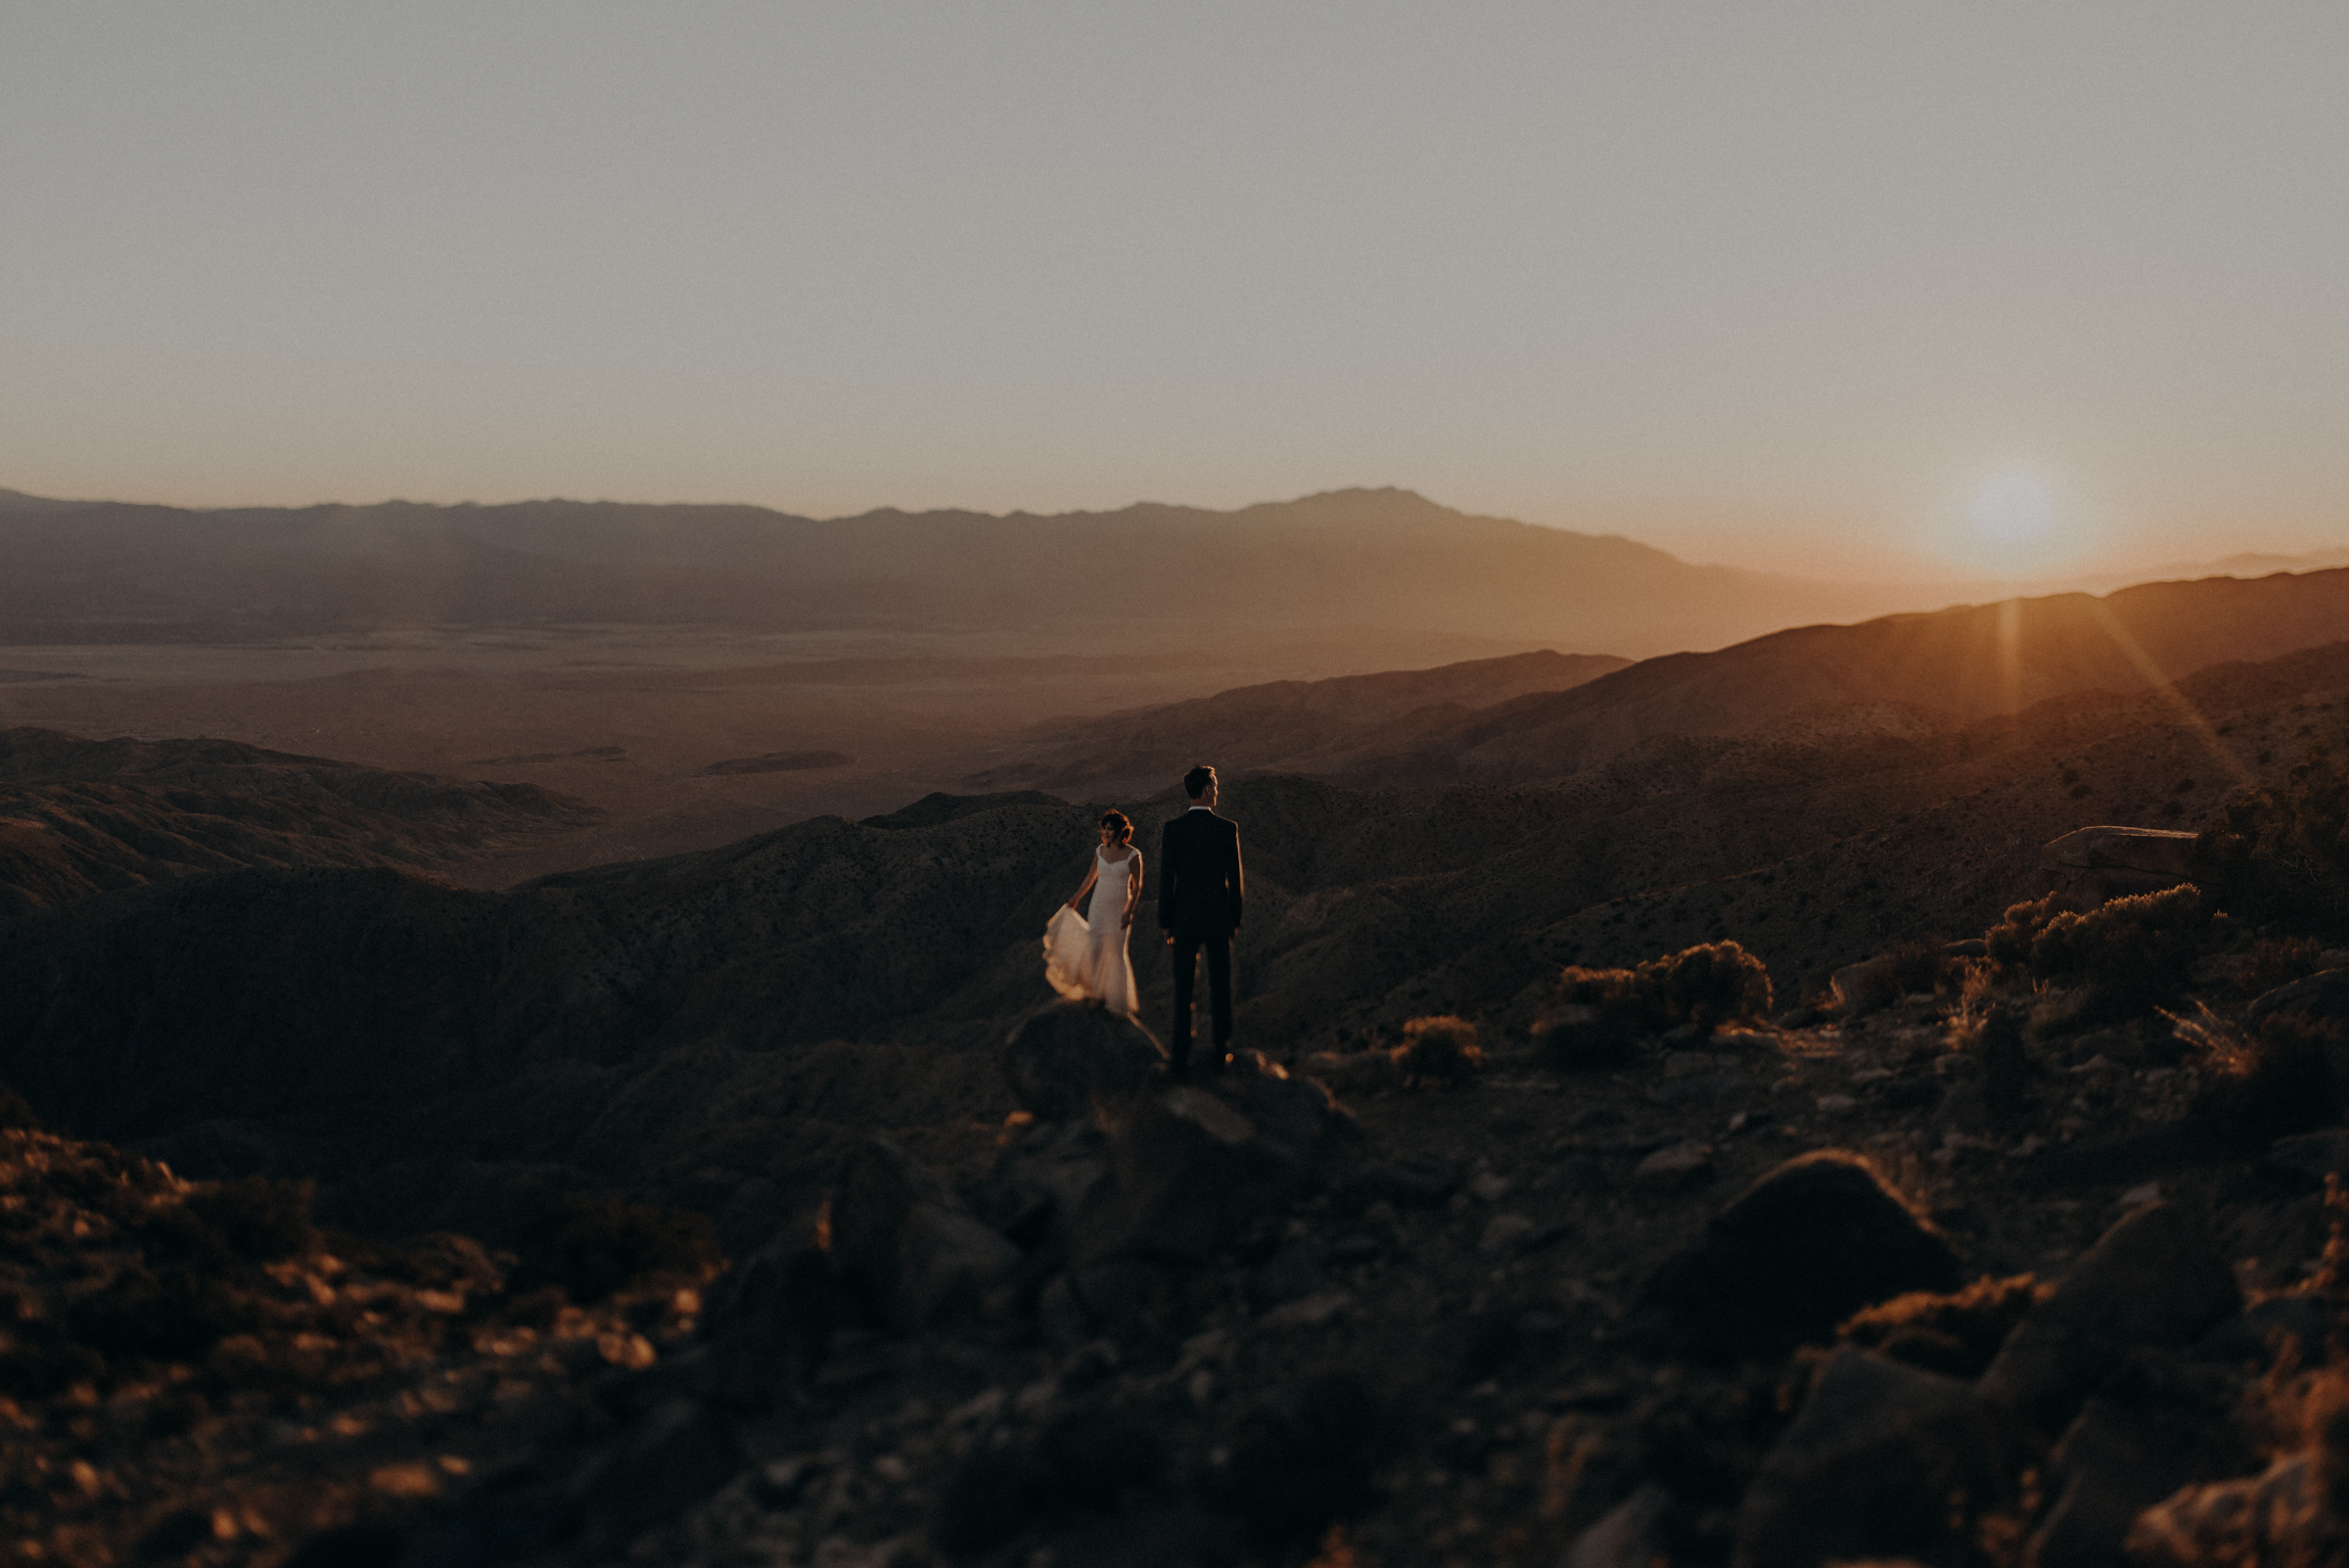 Joshua Tree Elopement - Los Angeles Wedding Photographers - IsaiahAndTaylor.com-103.jpg